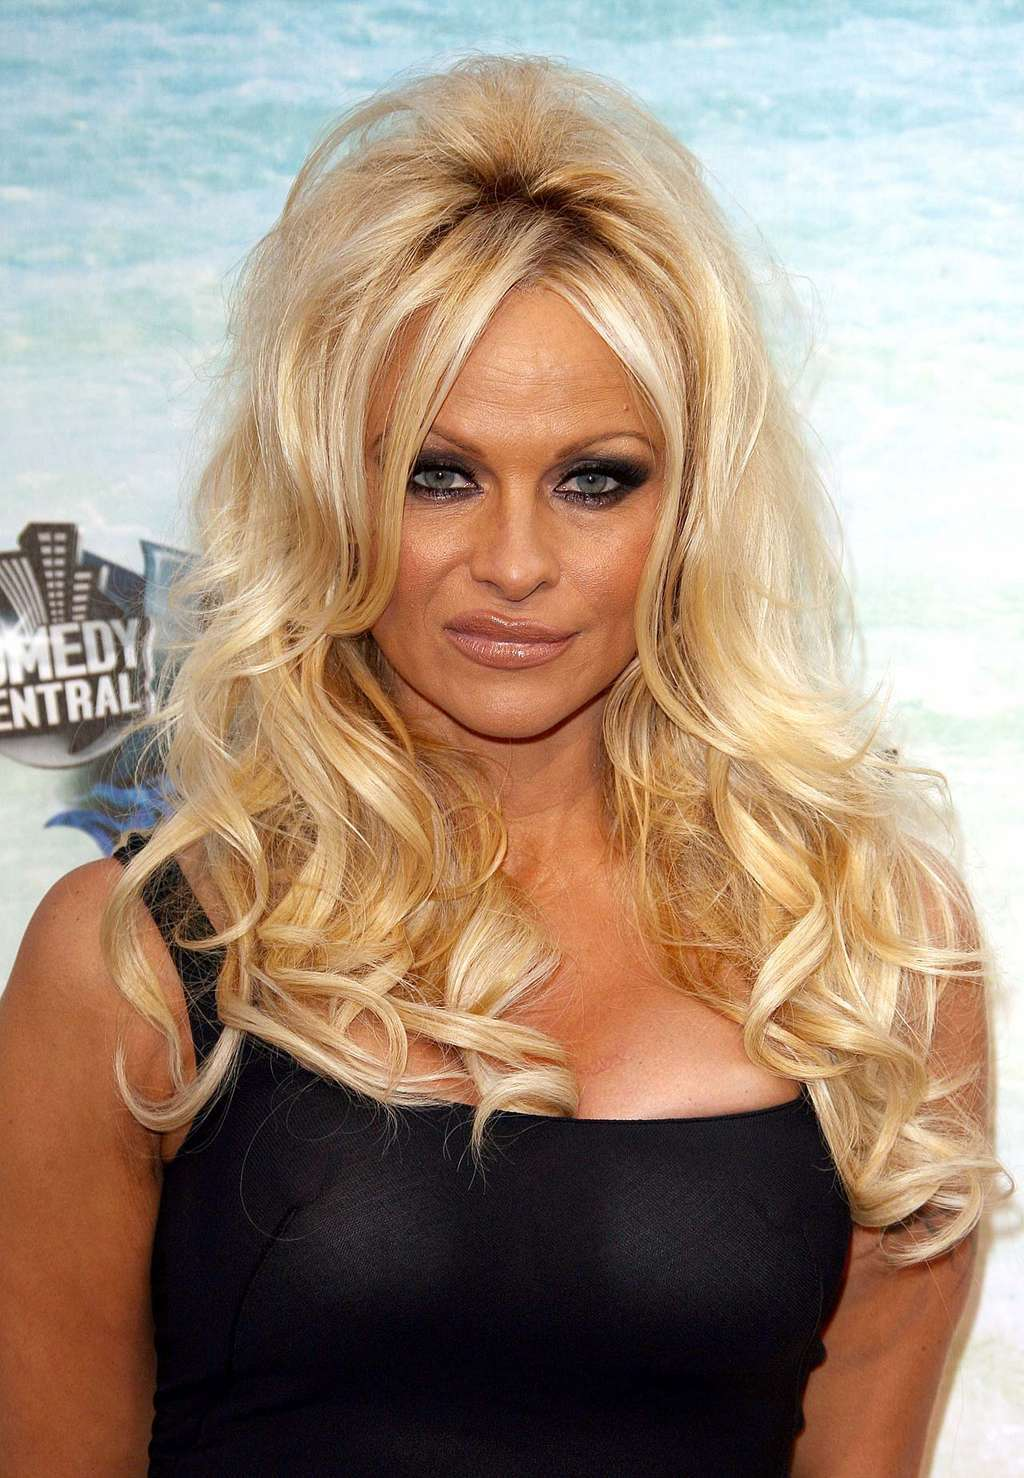 Pamela Anderson Big Cleavages Photos  My 24News And -8250